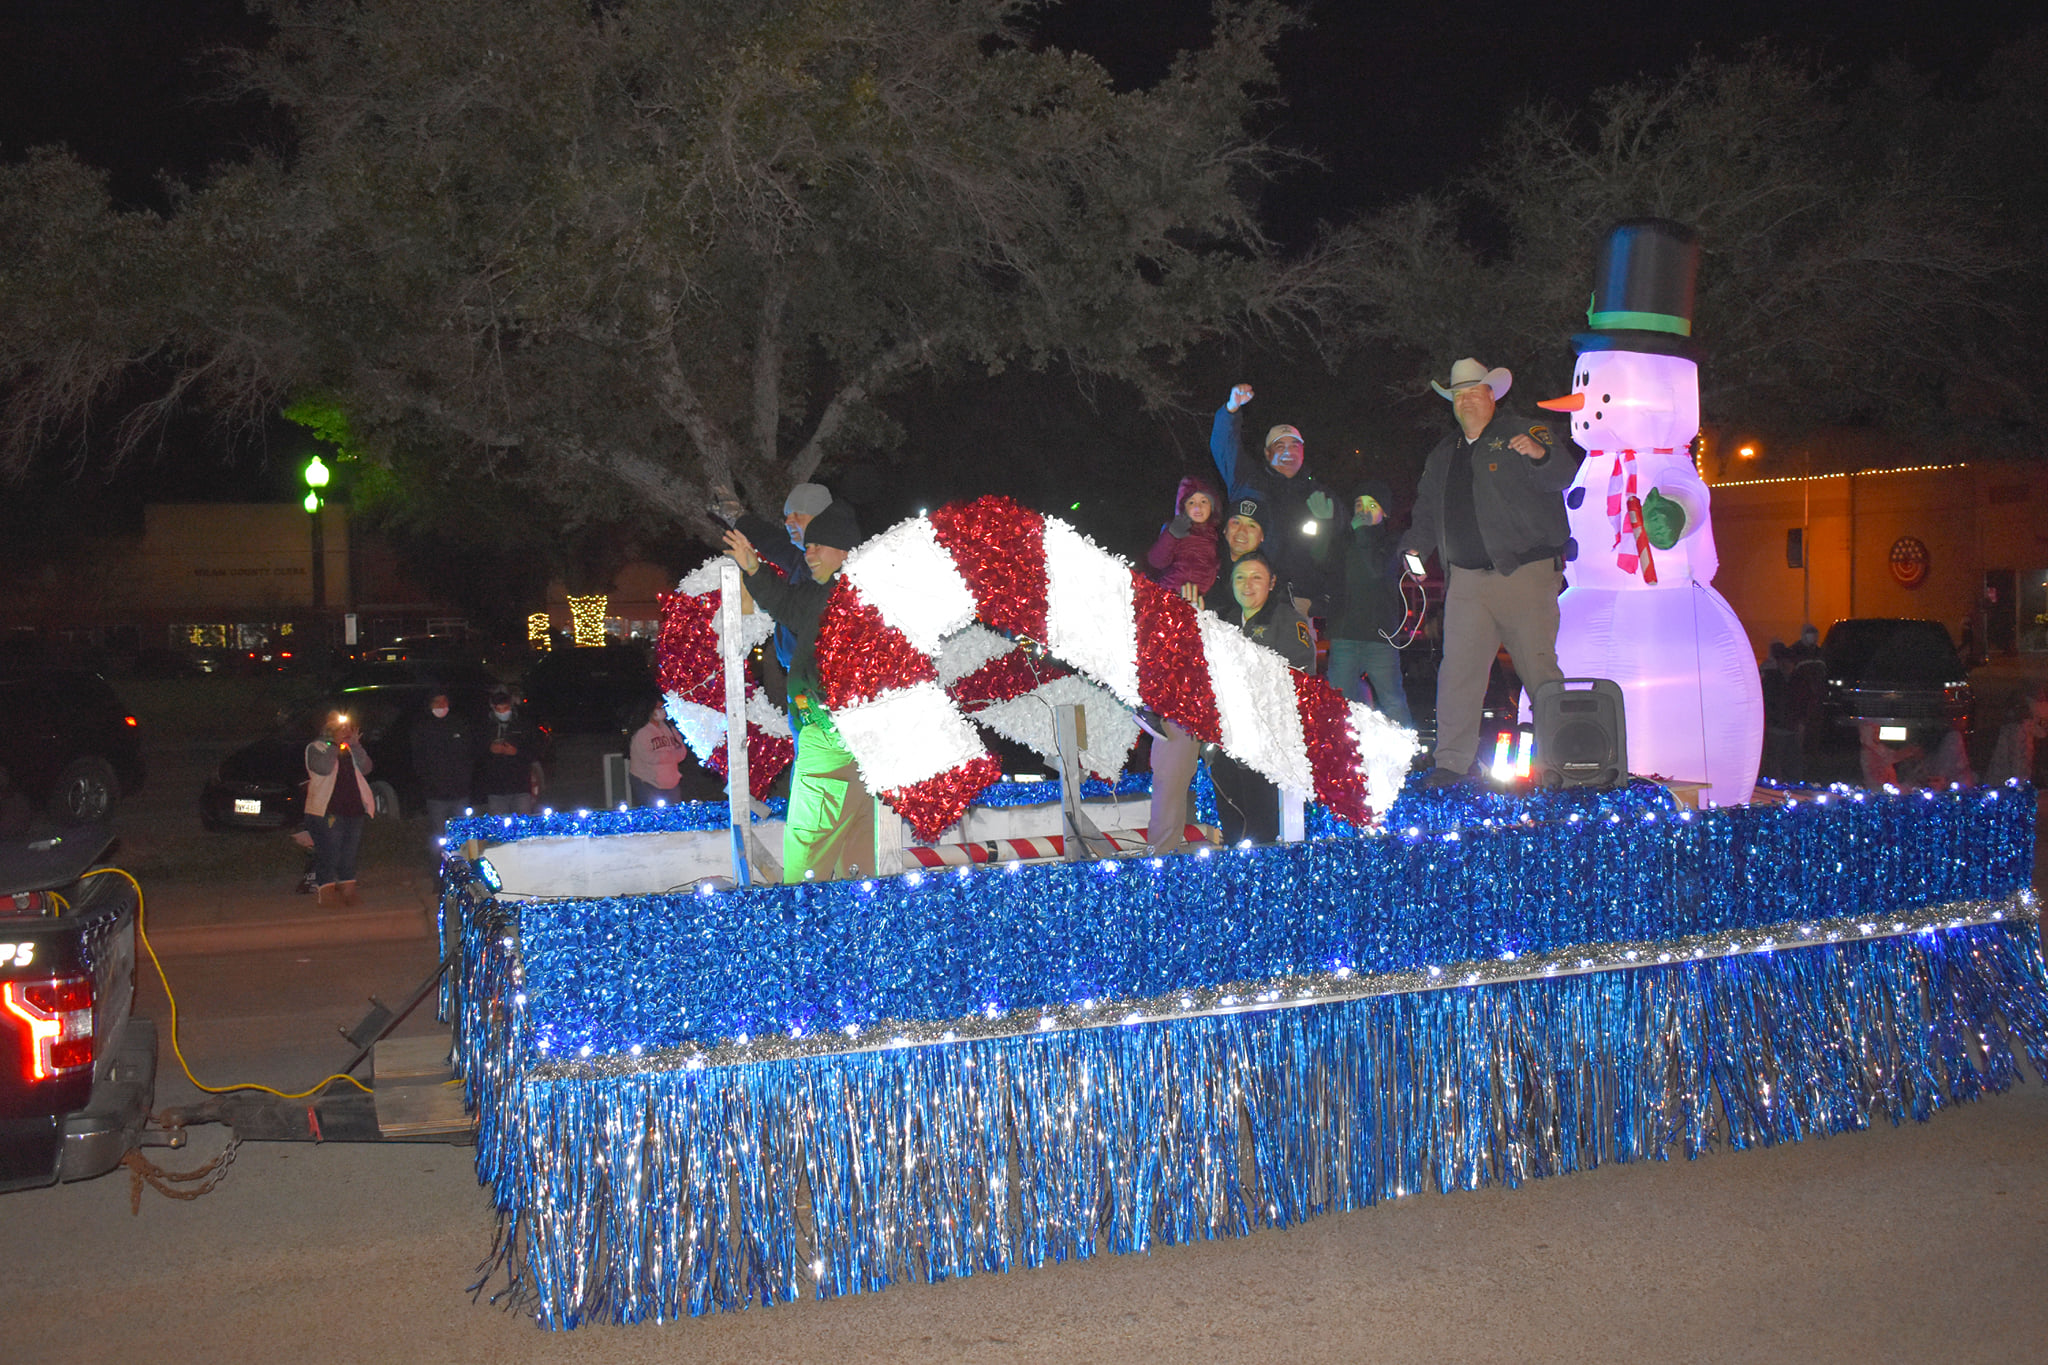 This 2020 Sheriff David Greene's Milam County Brown Santa Float was seen in the 1947 Miracle on 34th Street. If you look closely you can make out the exact details in the scene where John Payne and Natalie Wood sit talking as the Macy's Parade travels by in the background.